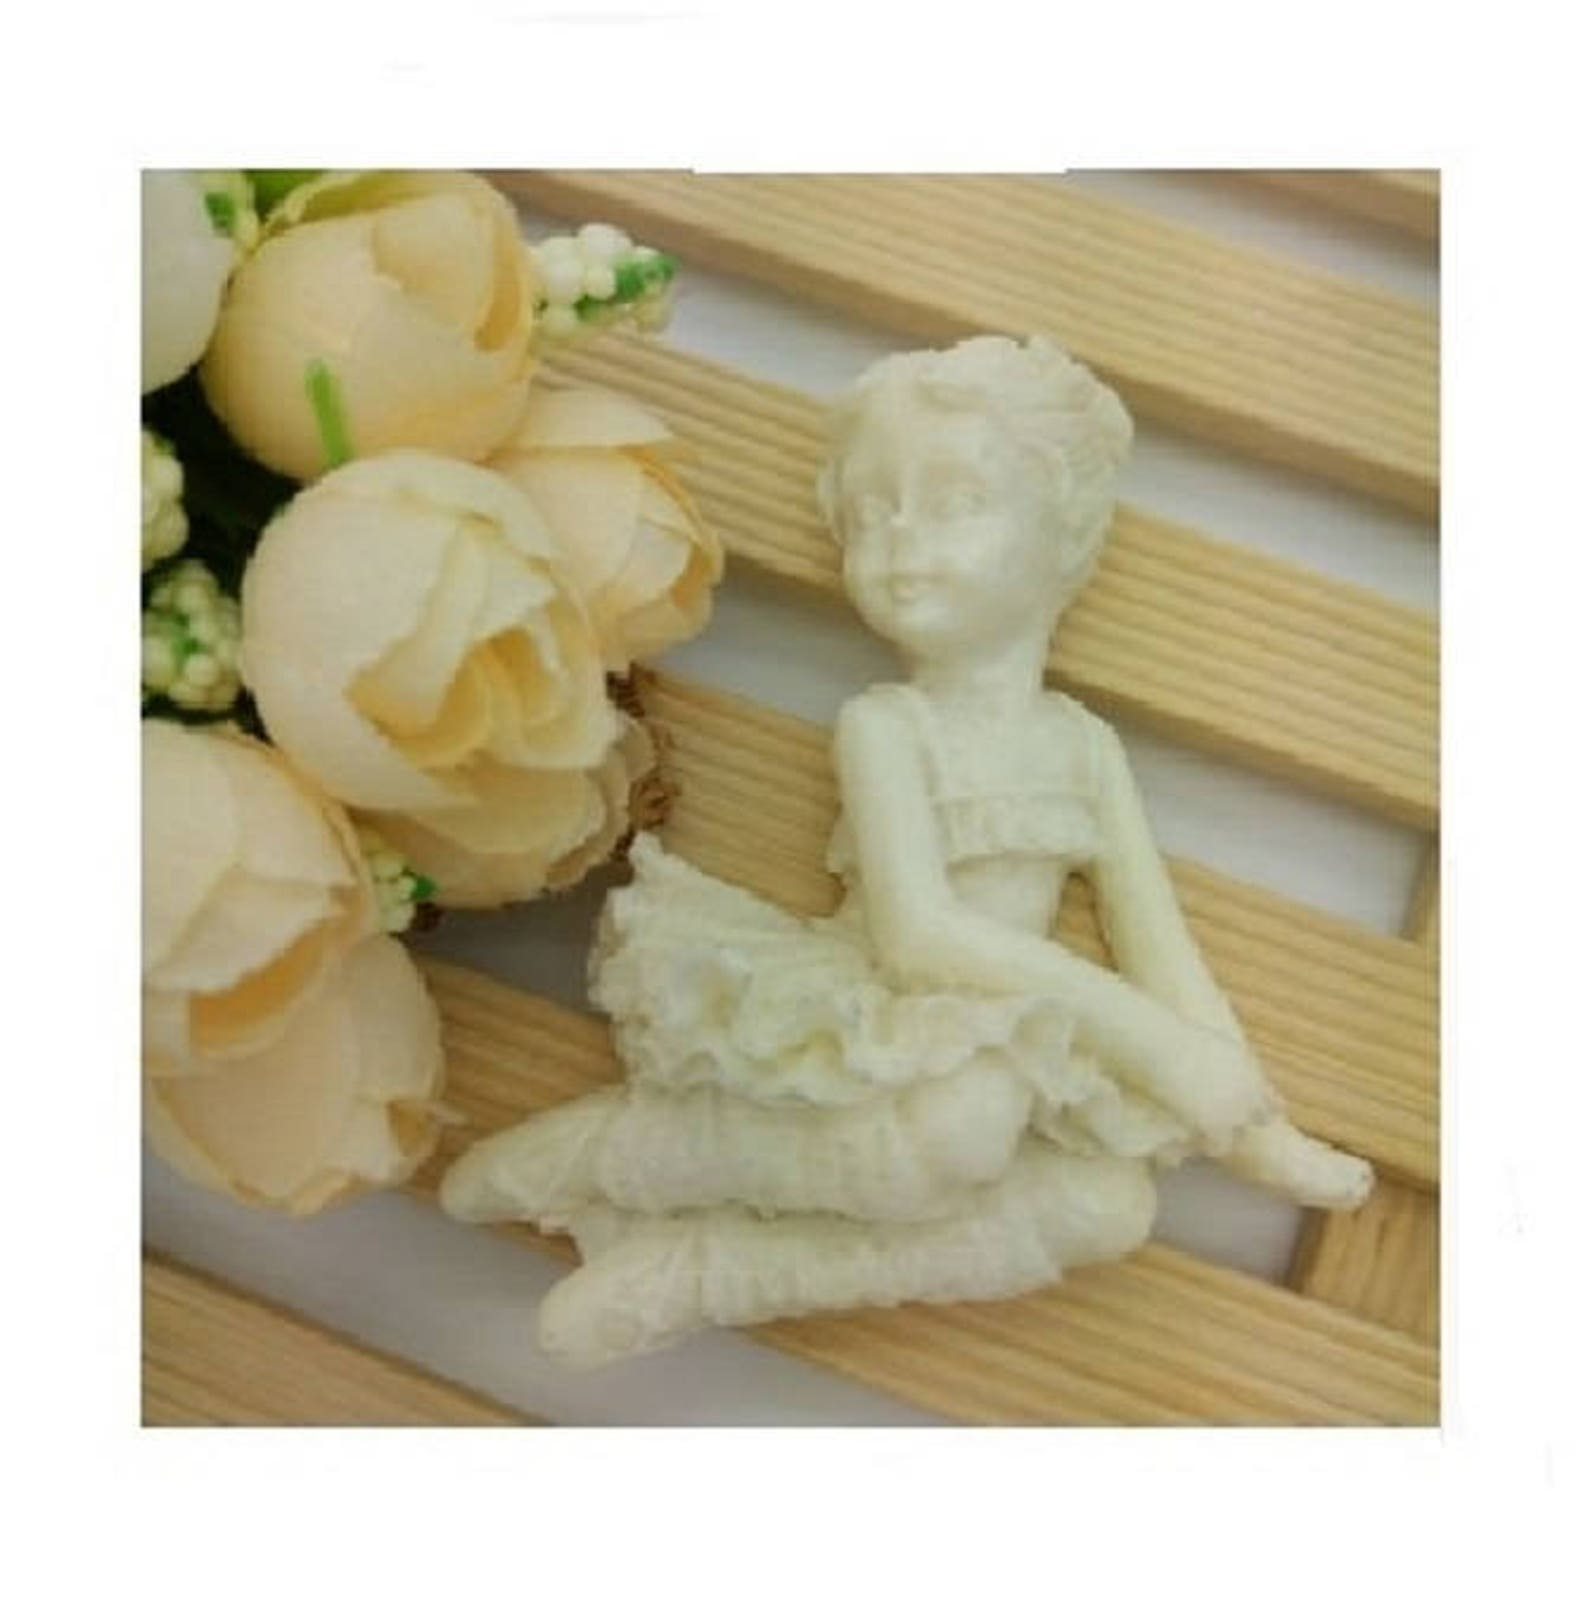 ballerina silicone mold girl cake topper ballet tutu skirt chocolate ornaments party decor baby shower favors cupcake toppers ar